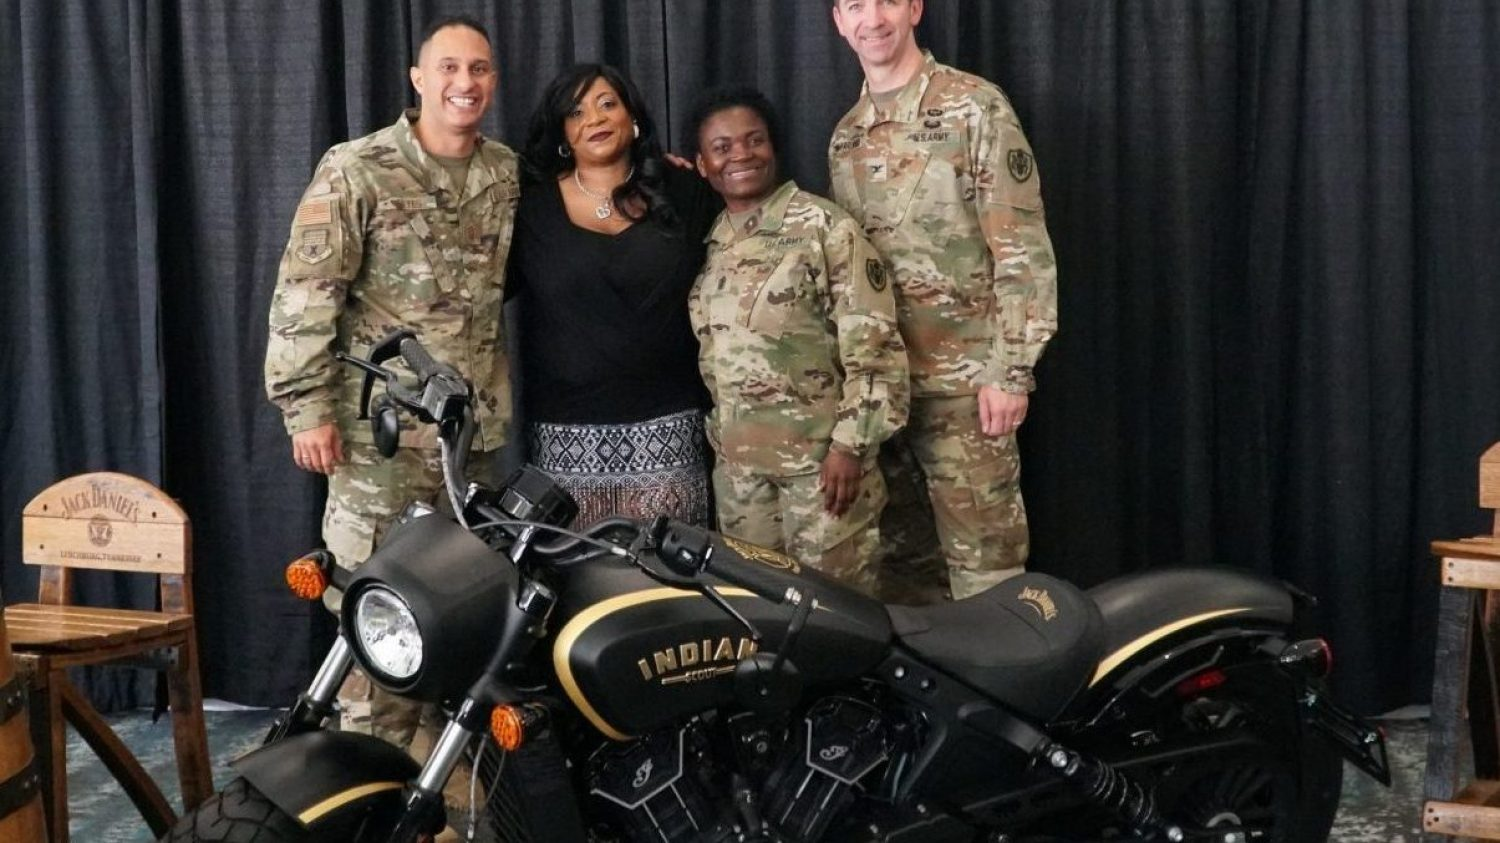 Three Soldiers in uniform stand with an Army veteran behind an Indian motorcycle